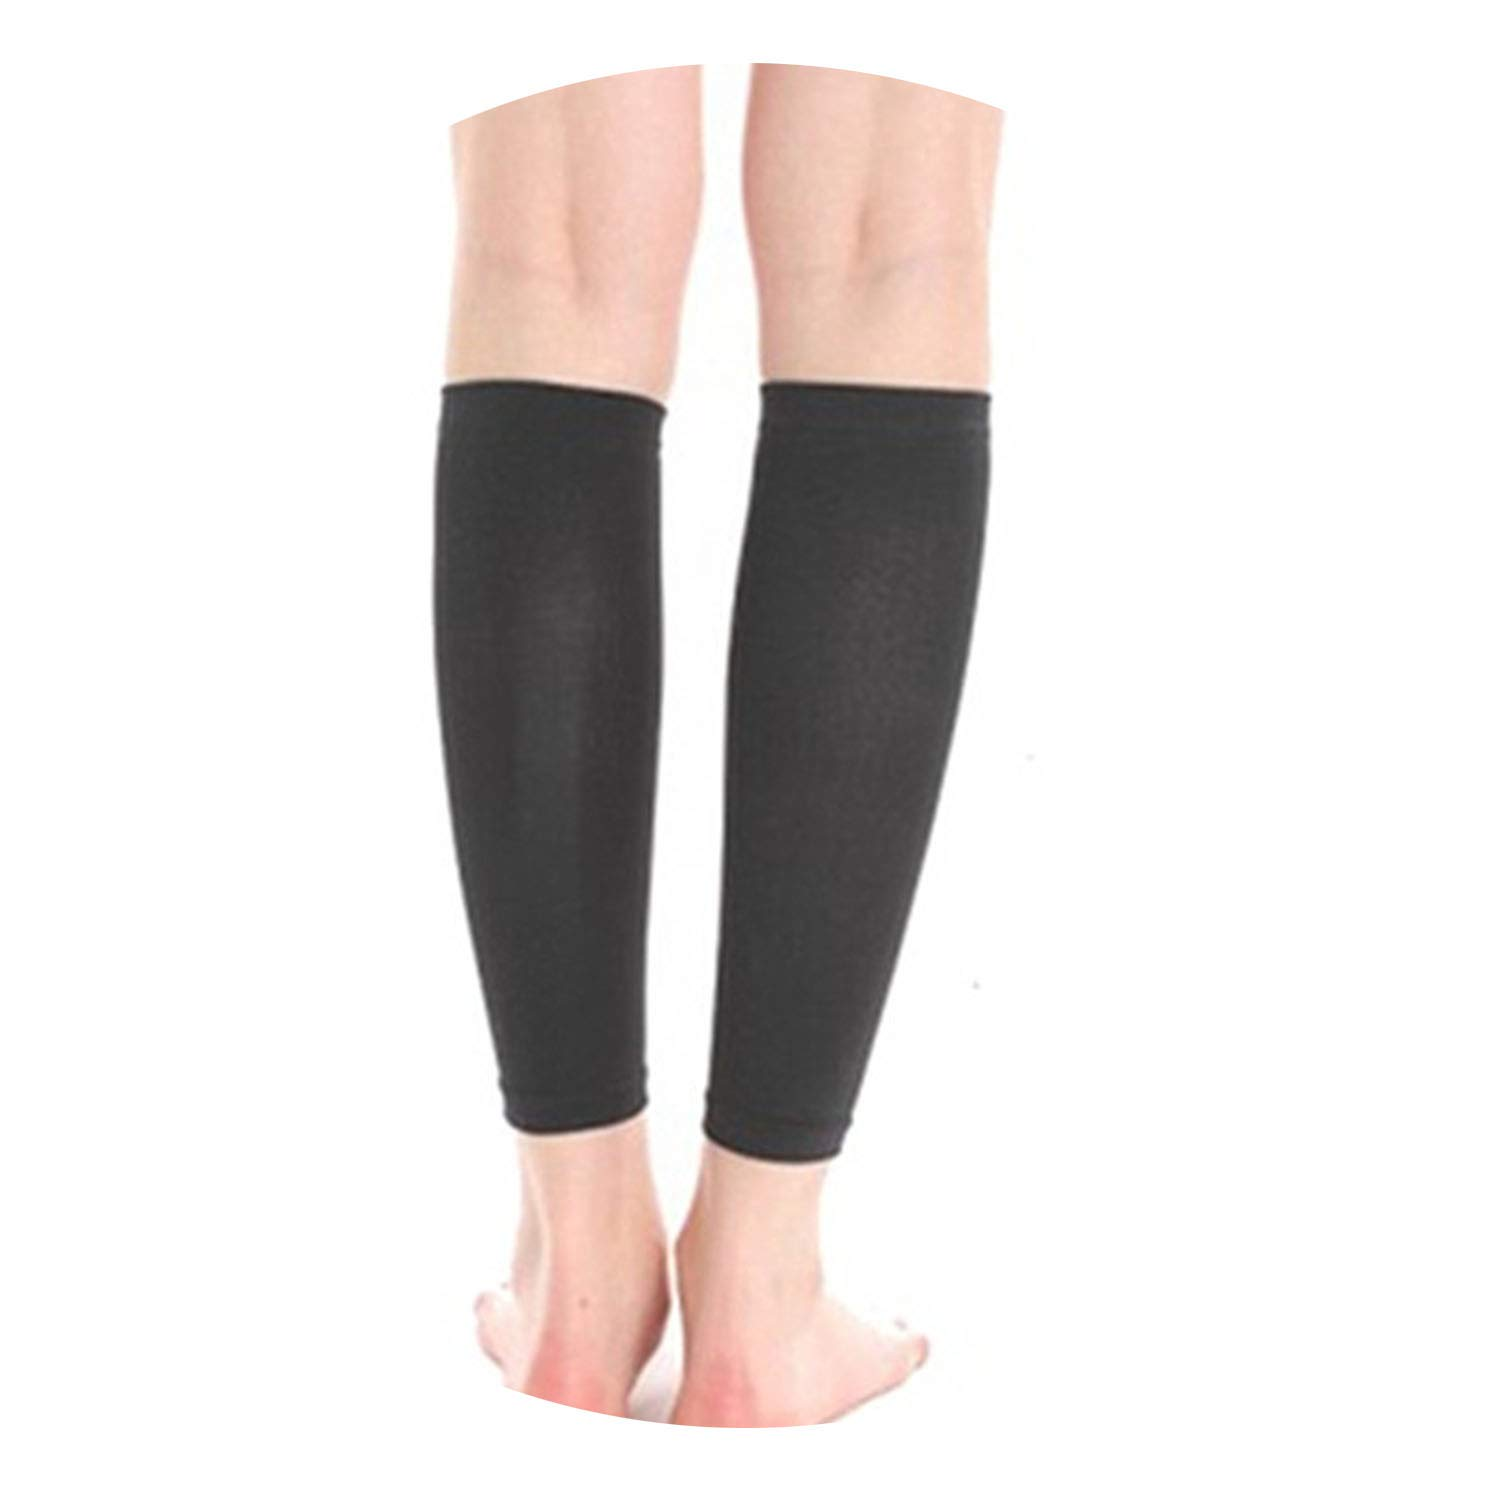 1pair XL Women Shapers New Body Shapers Slimming Calf Thigh Sleeves Arms Sleeves Weight Loss Arm Shapewear